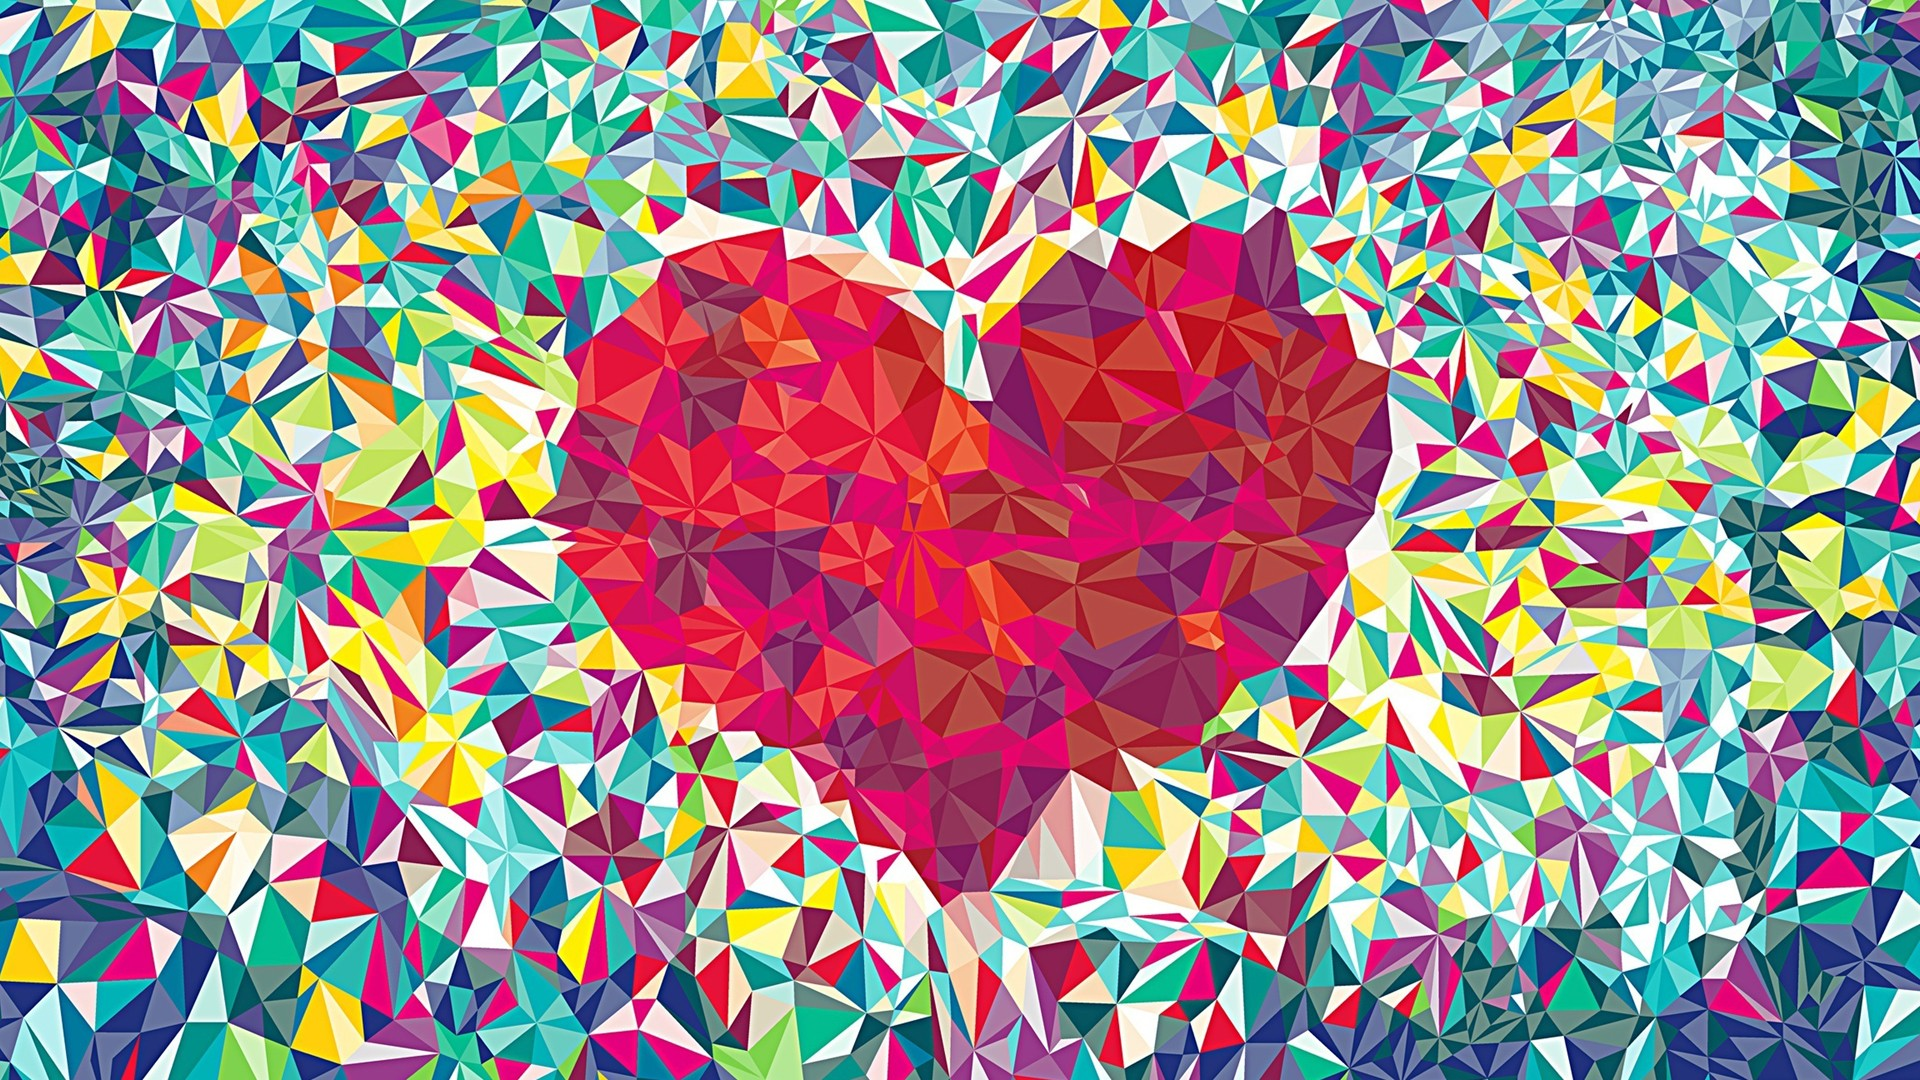 70 awesome heart backgrounds Pictures